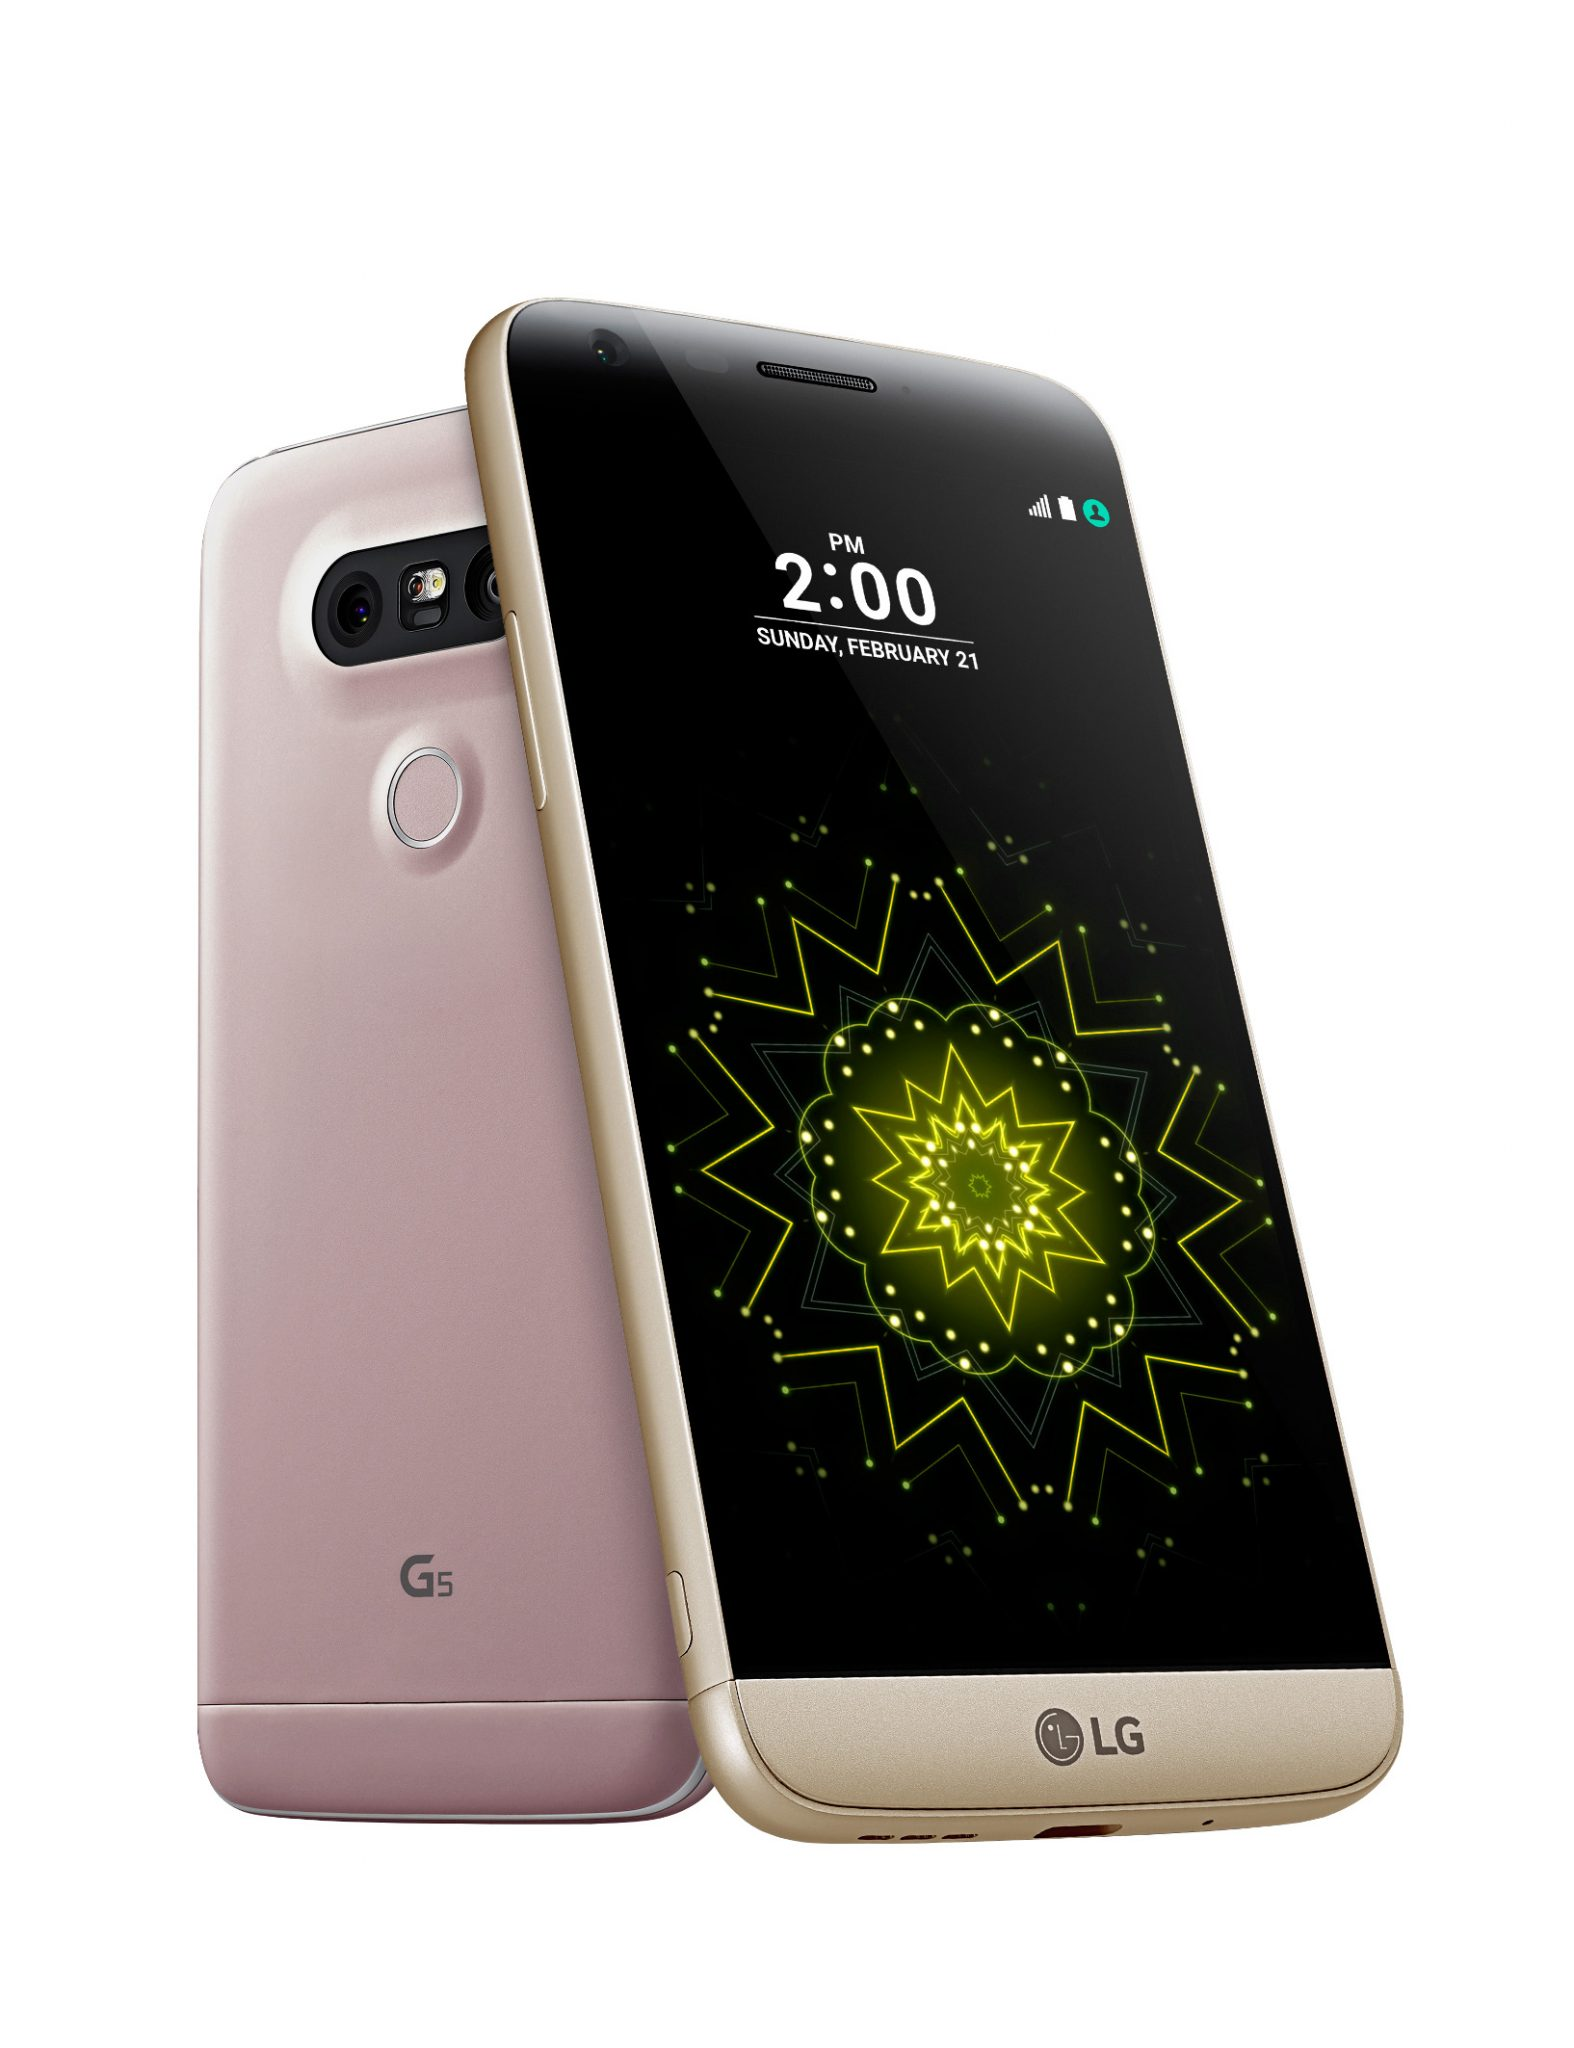 LG G5 1 - LG unveils the LG G5 with a Modular Design and Dual Cameras